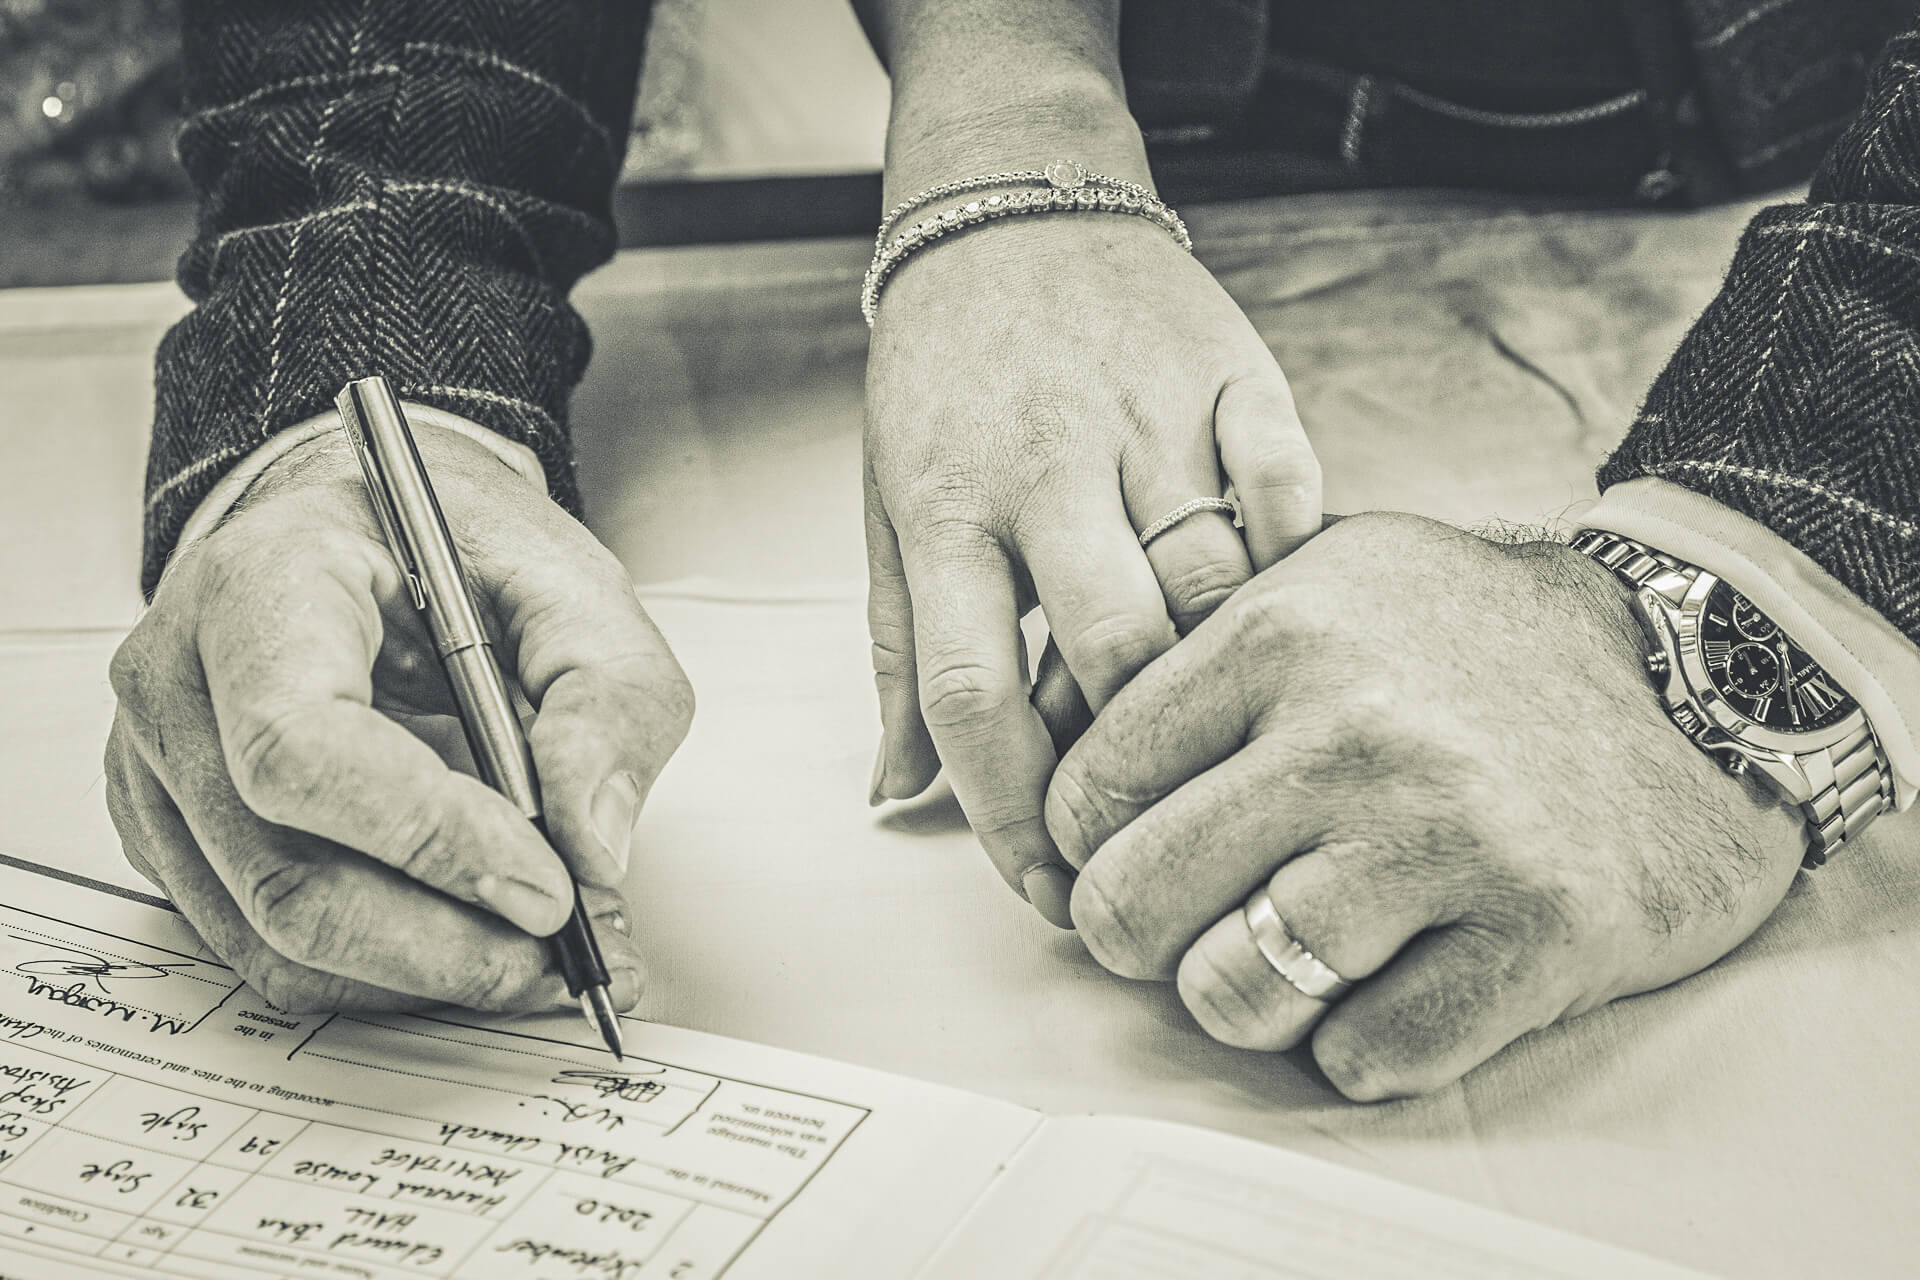 A close up shot of the Grooms hands as he signs the wedding register with a fountain pen. The Bride holds his left thumb with her left hand, both wedding rings are visible.